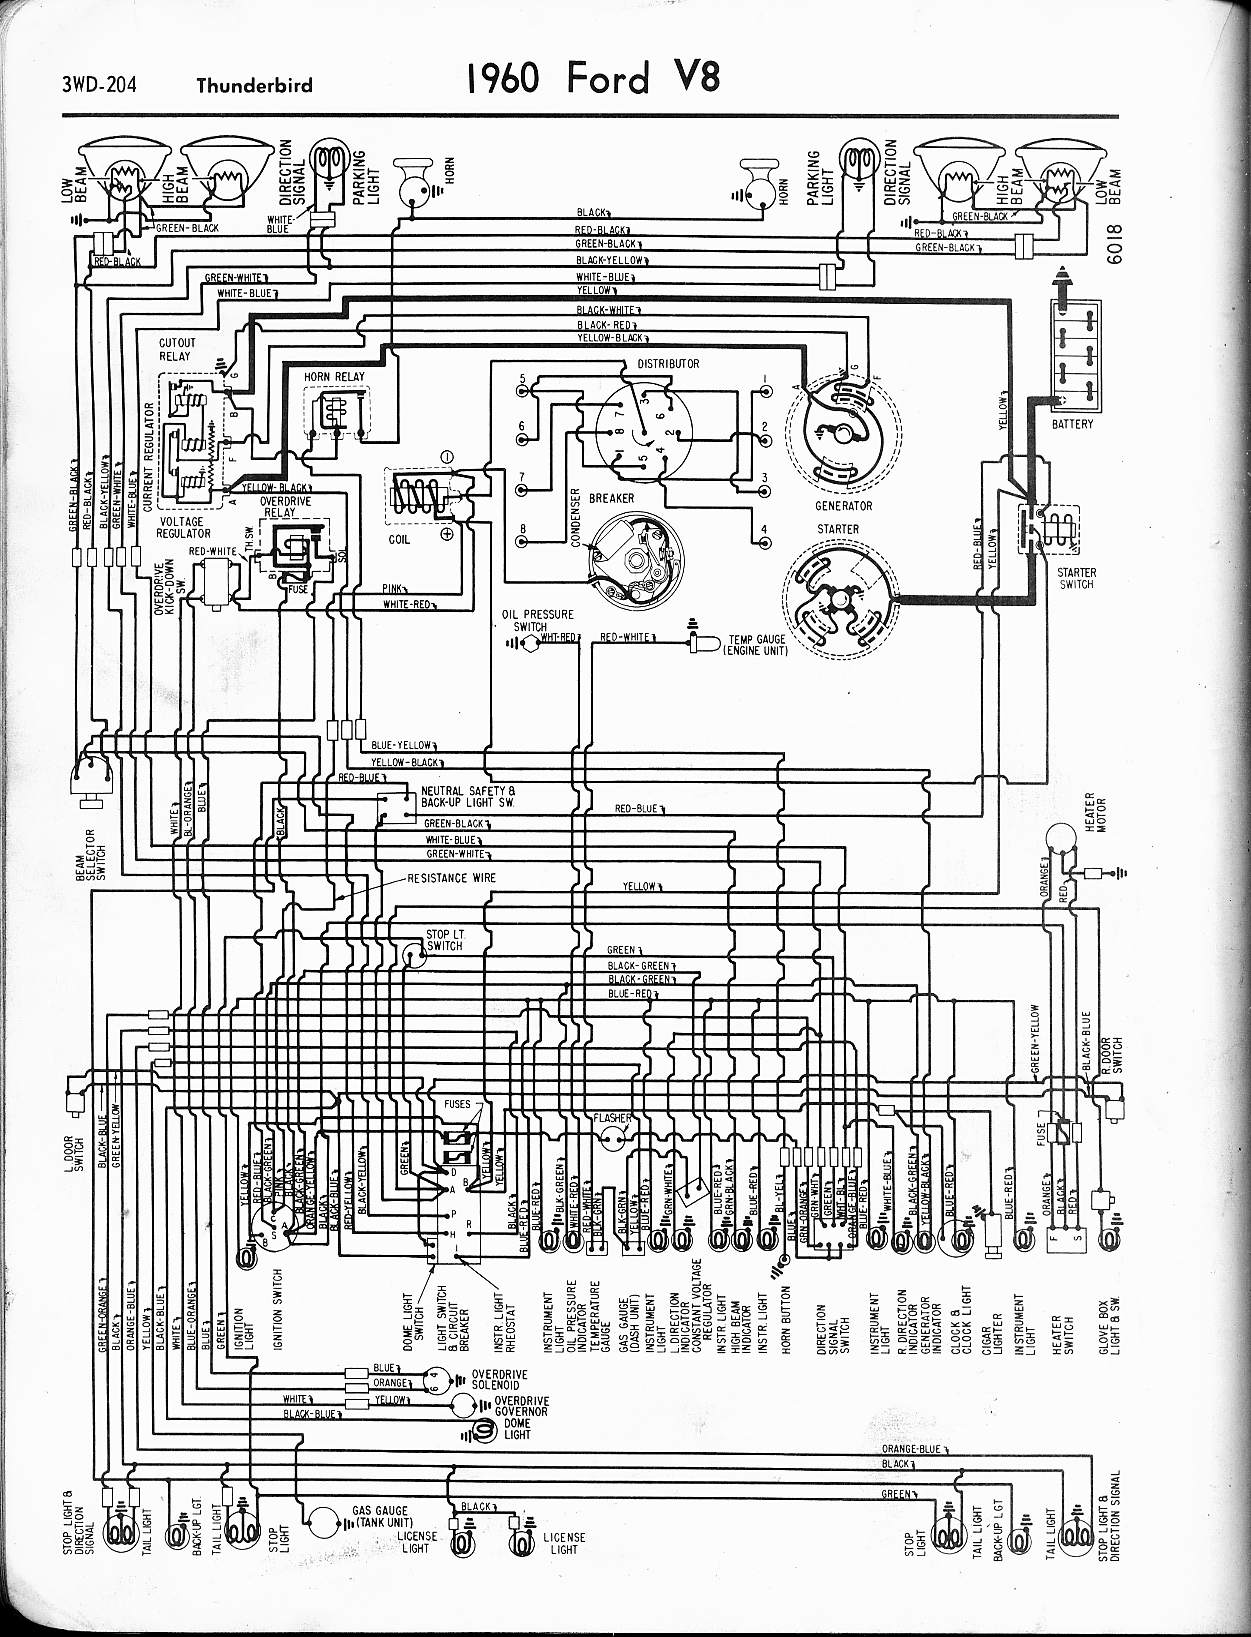 1970 Fairlane Wiring Diagram Great Engine Schematic 1971 Ford Torino Ignition Diagrams Simple Rh 33 Terranut Store 1964 1968